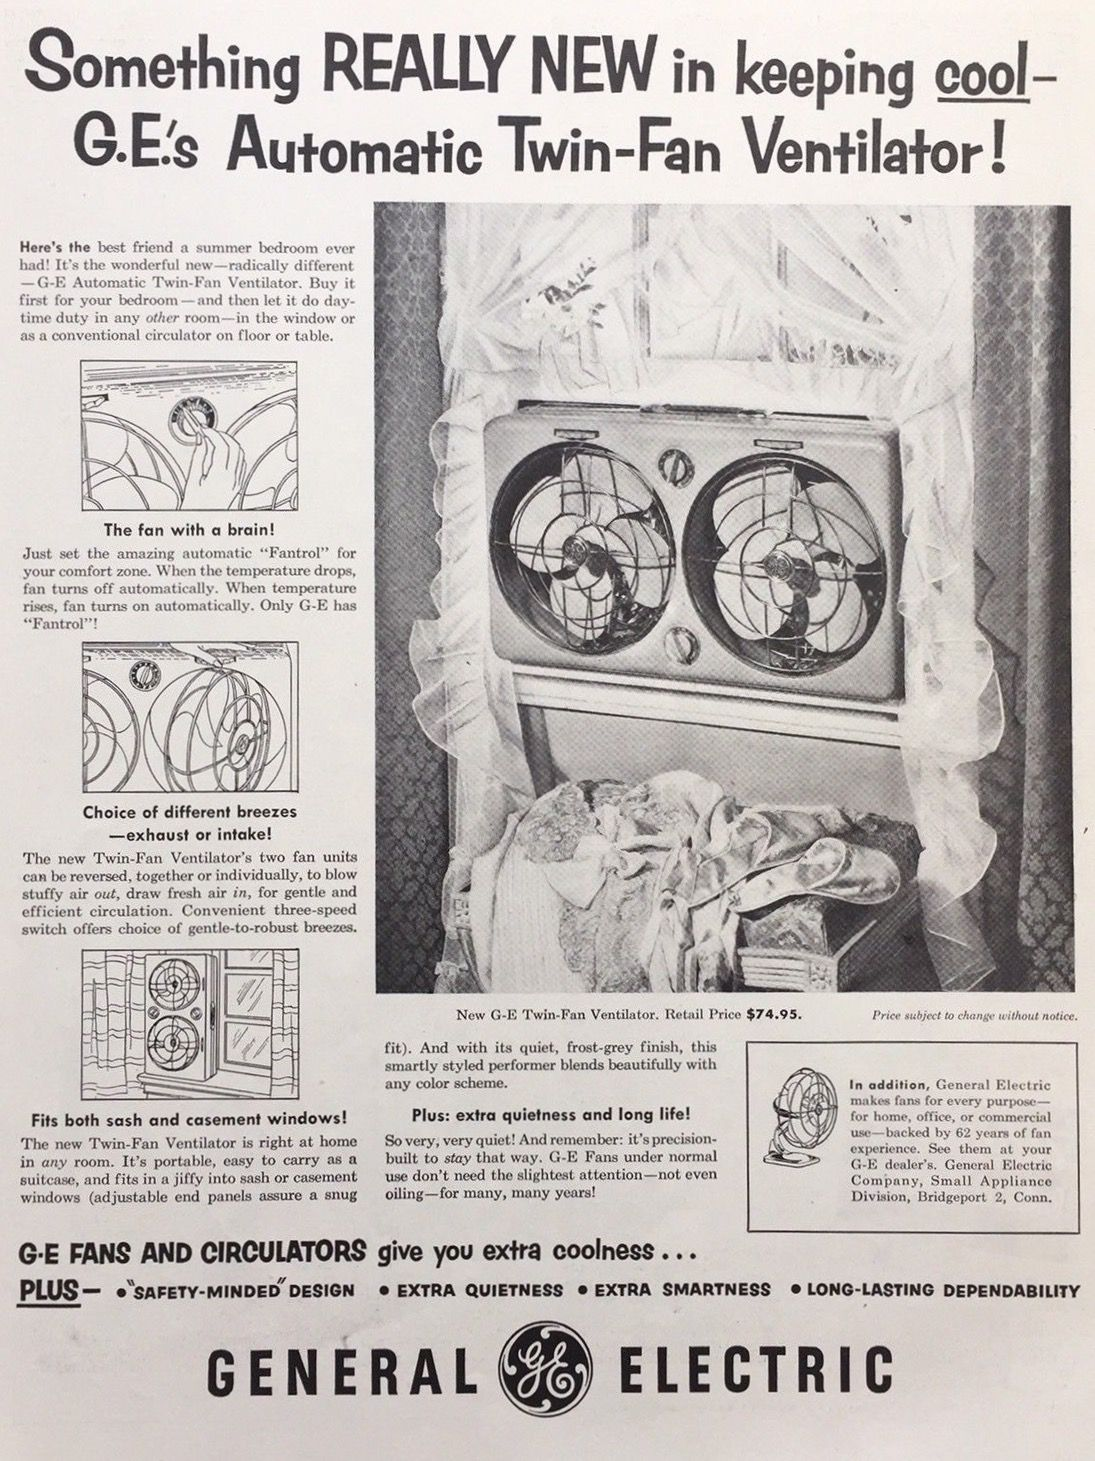 Pin By J E Hart On Vintage Ads Heating And Cooling Retro Ads